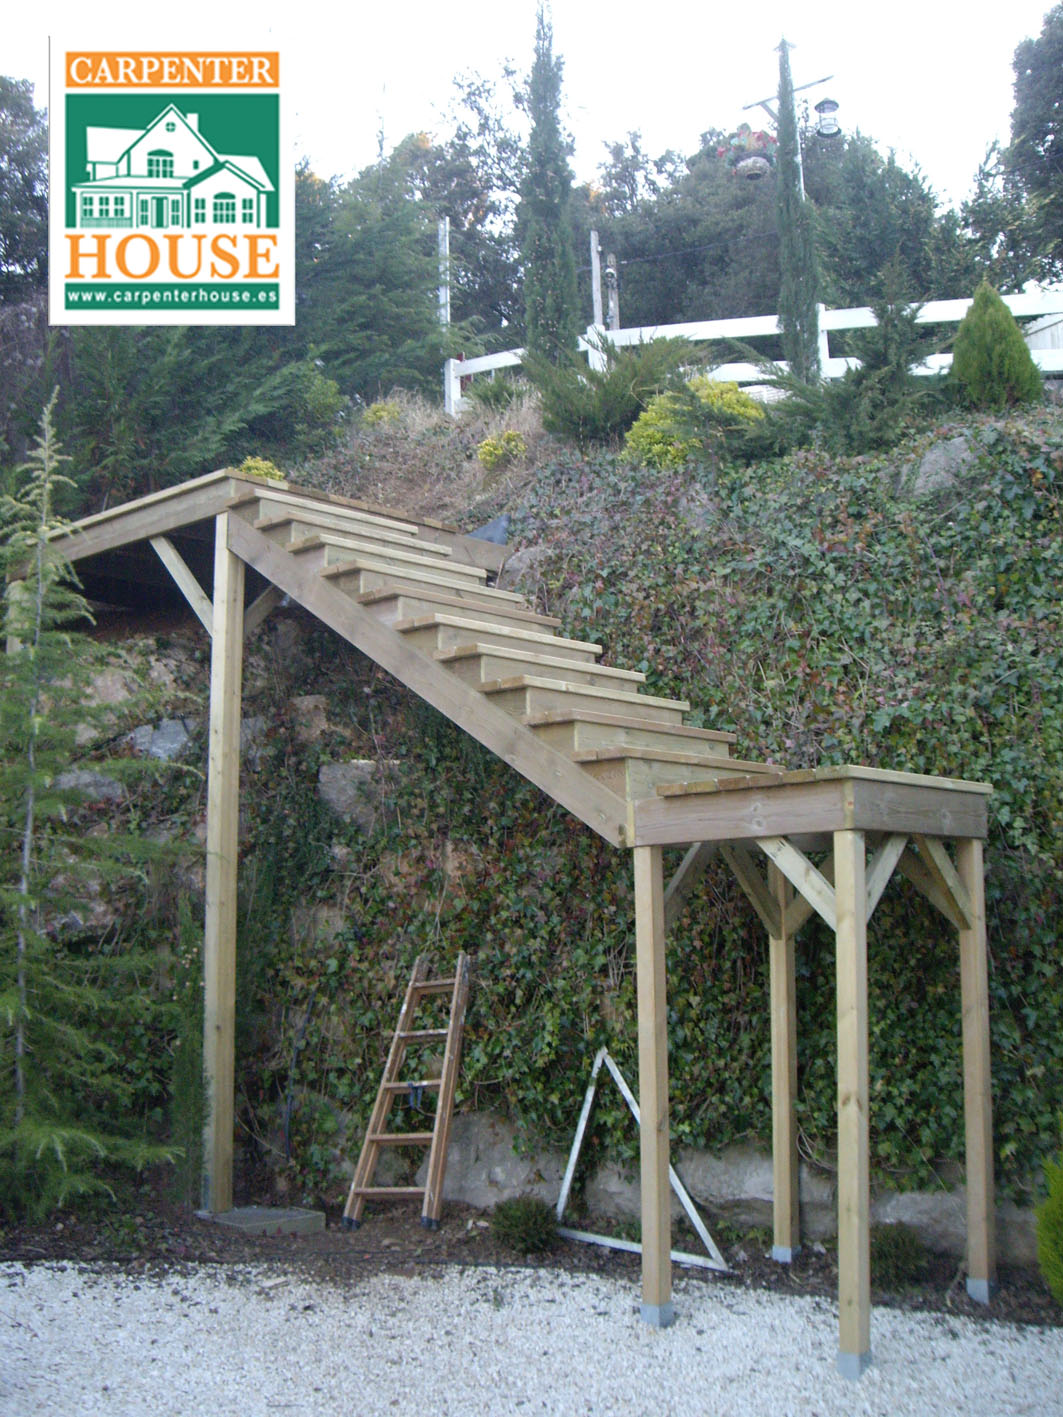 Carpenter house carpenter house construcci n de una - Construir escalera de madera ...